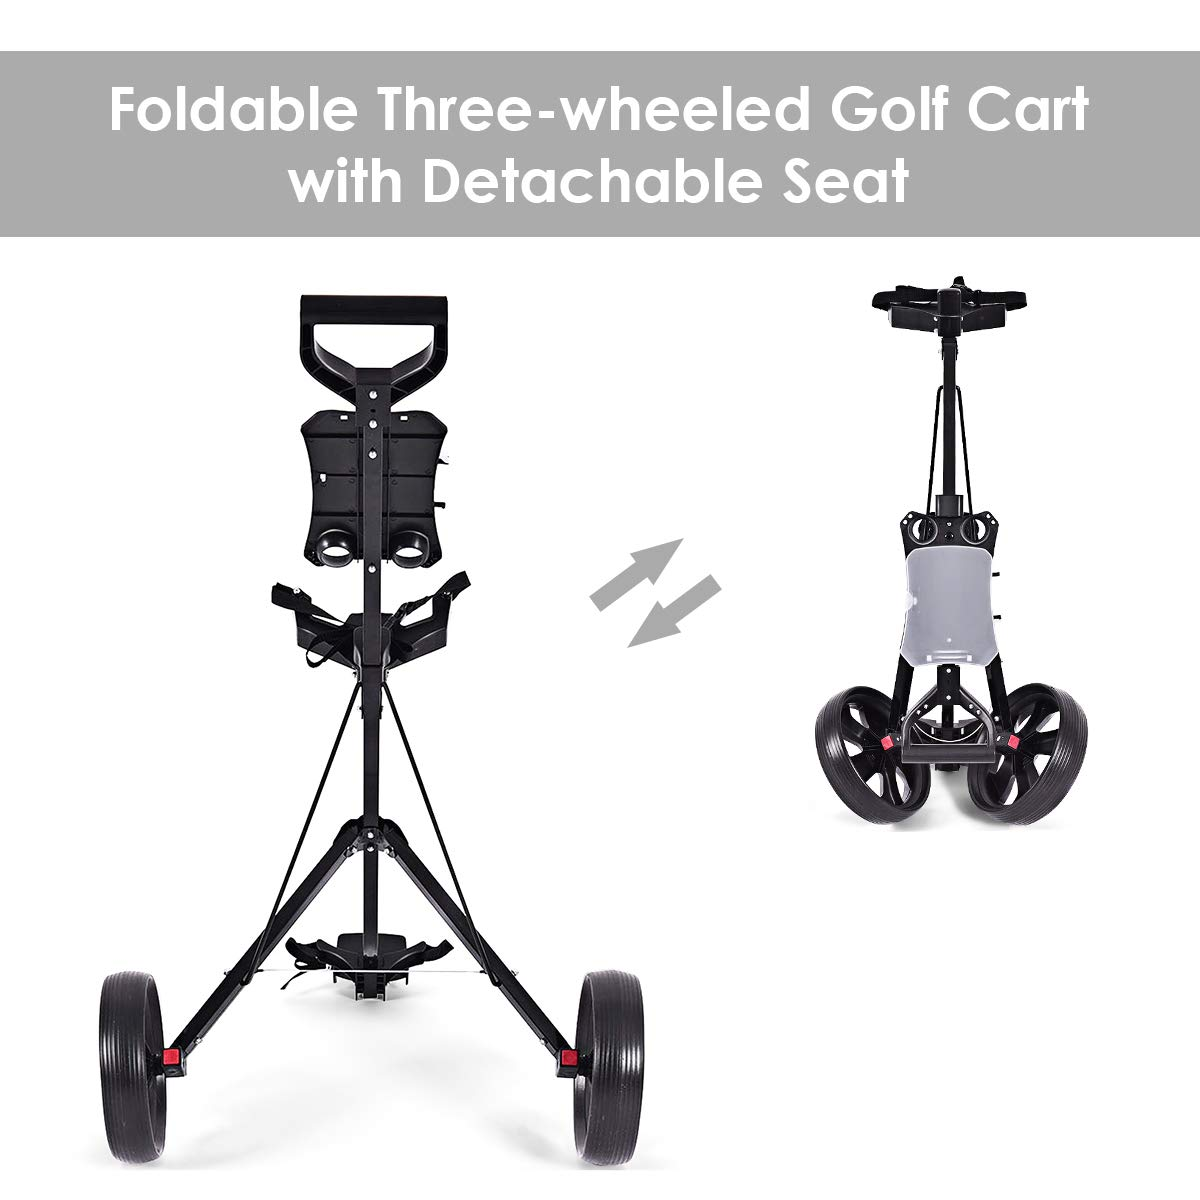 COSTWAY Golf Cart Foldable 2 Wheel Push Pull Cart Trolley by COSTWAY (Image #5)